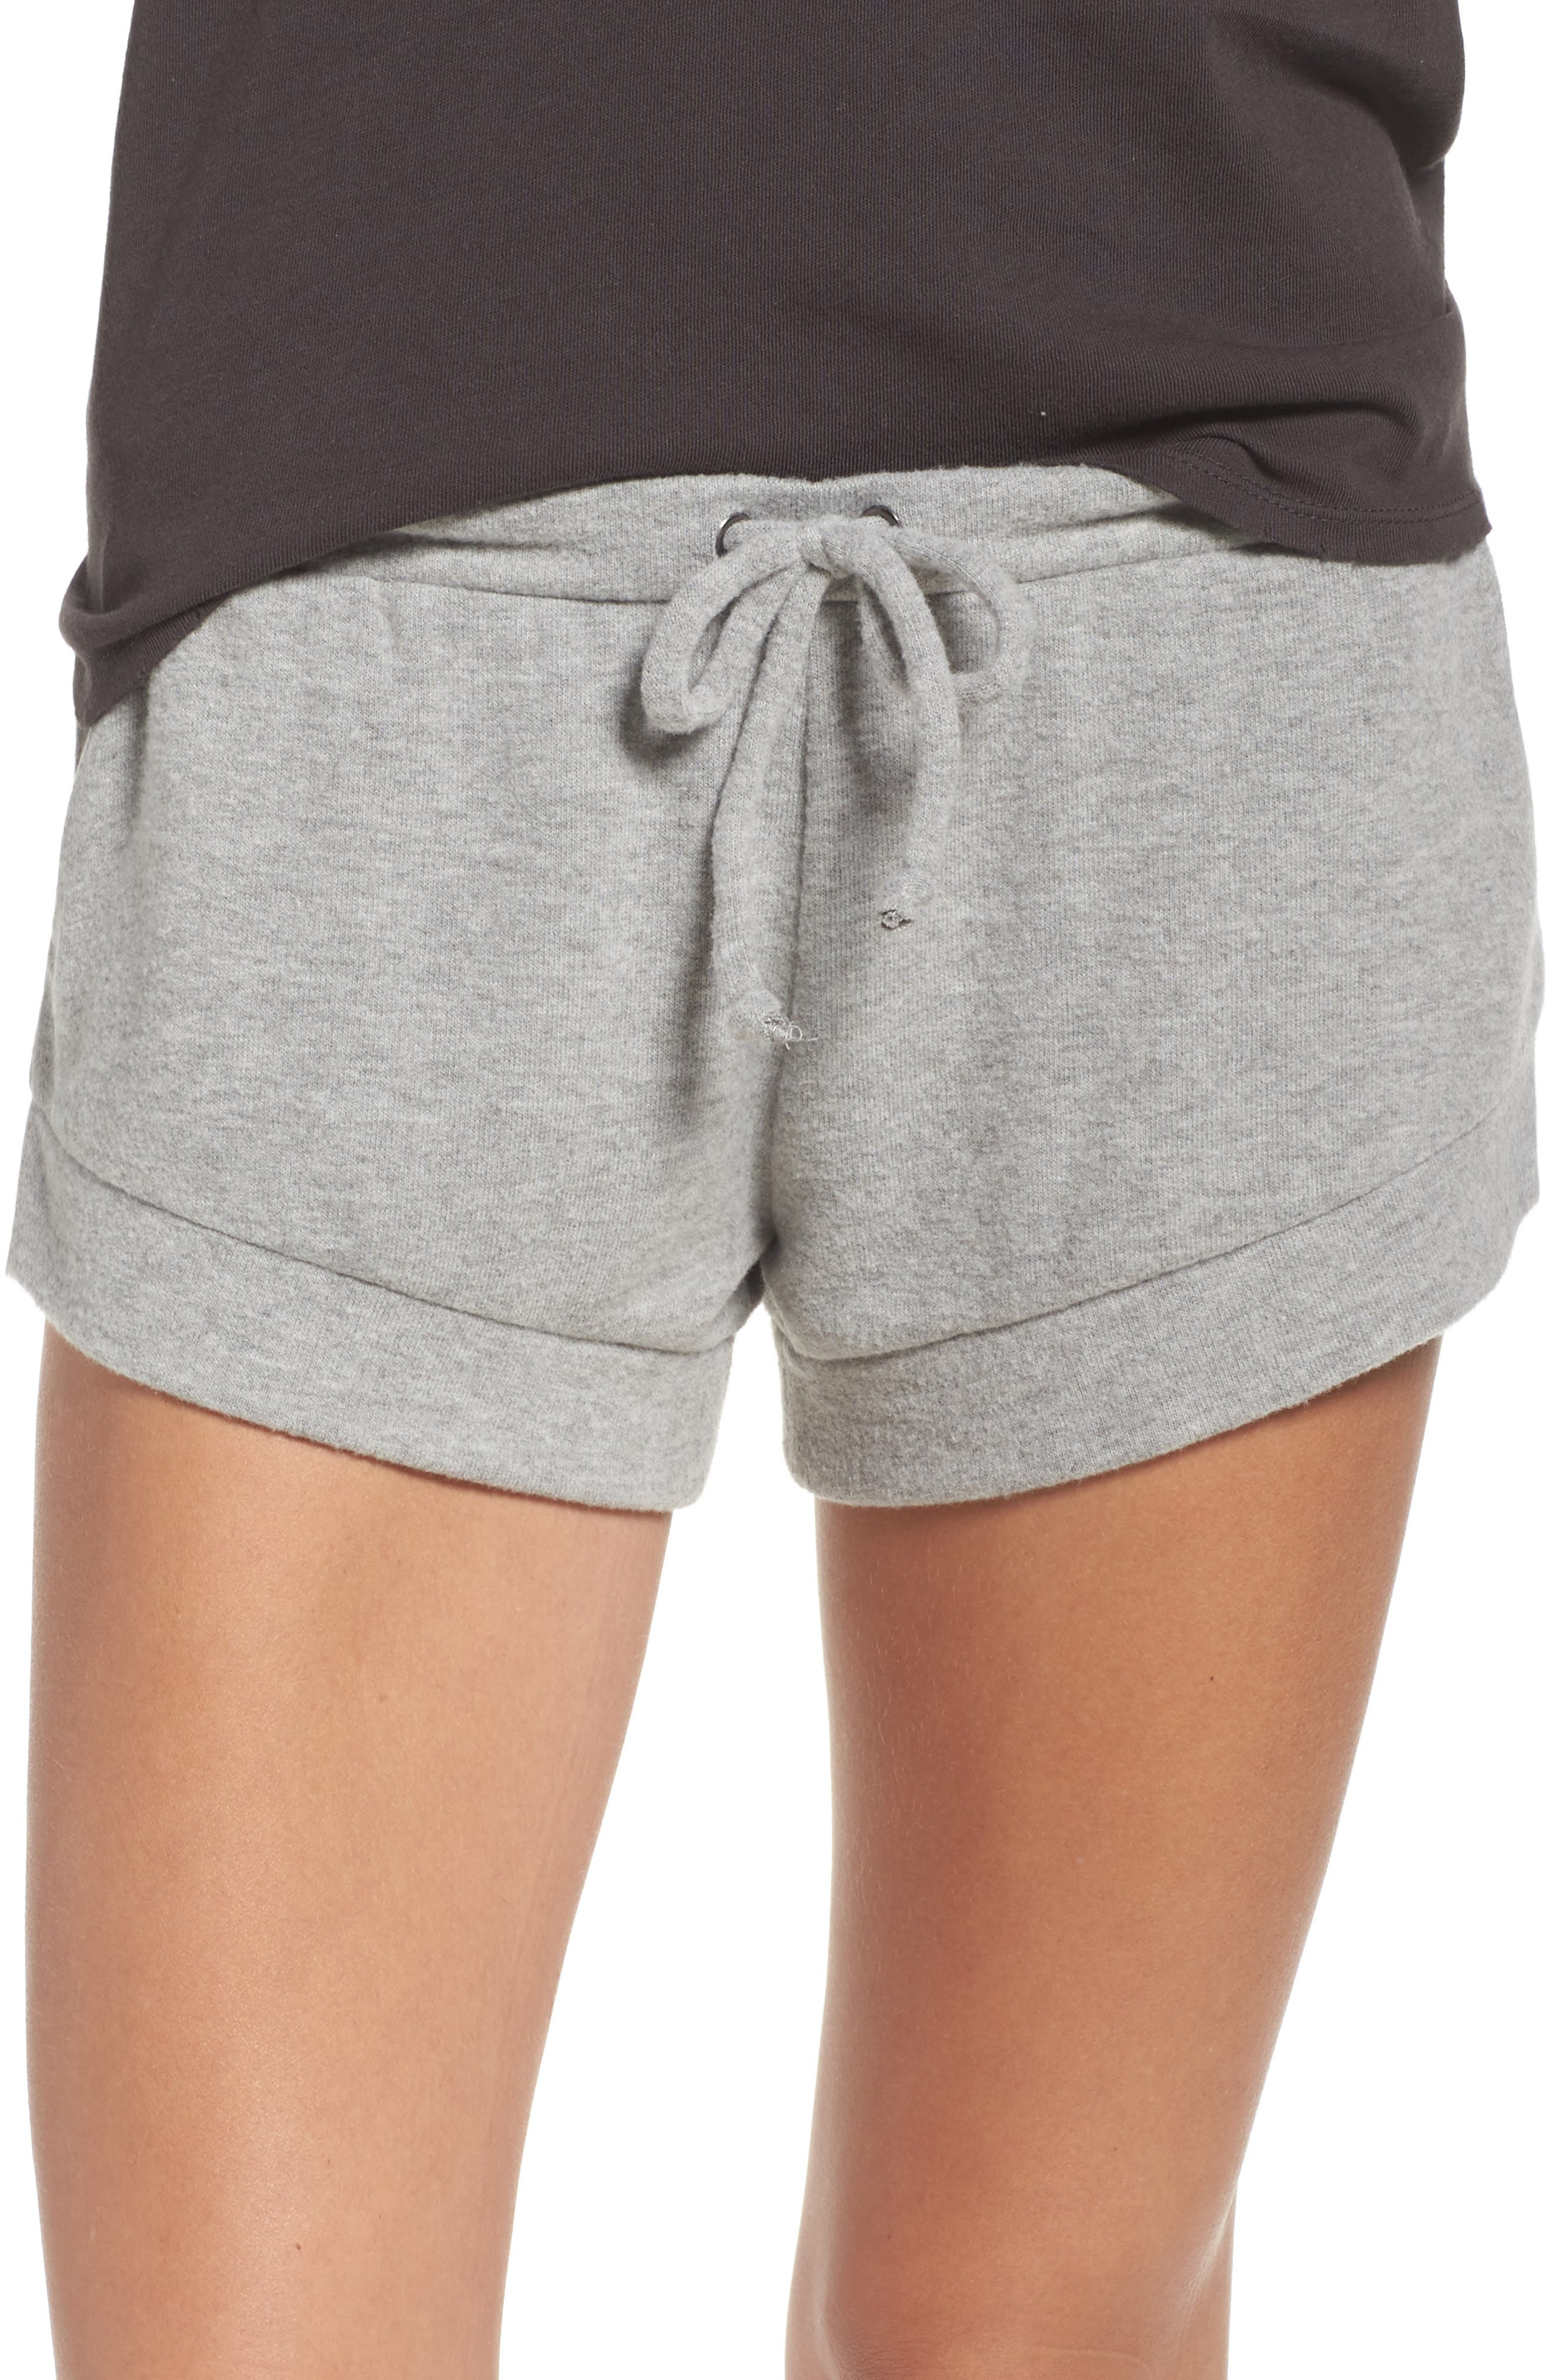 Lounge Shorts,                         Main,                         color, Heather Grey